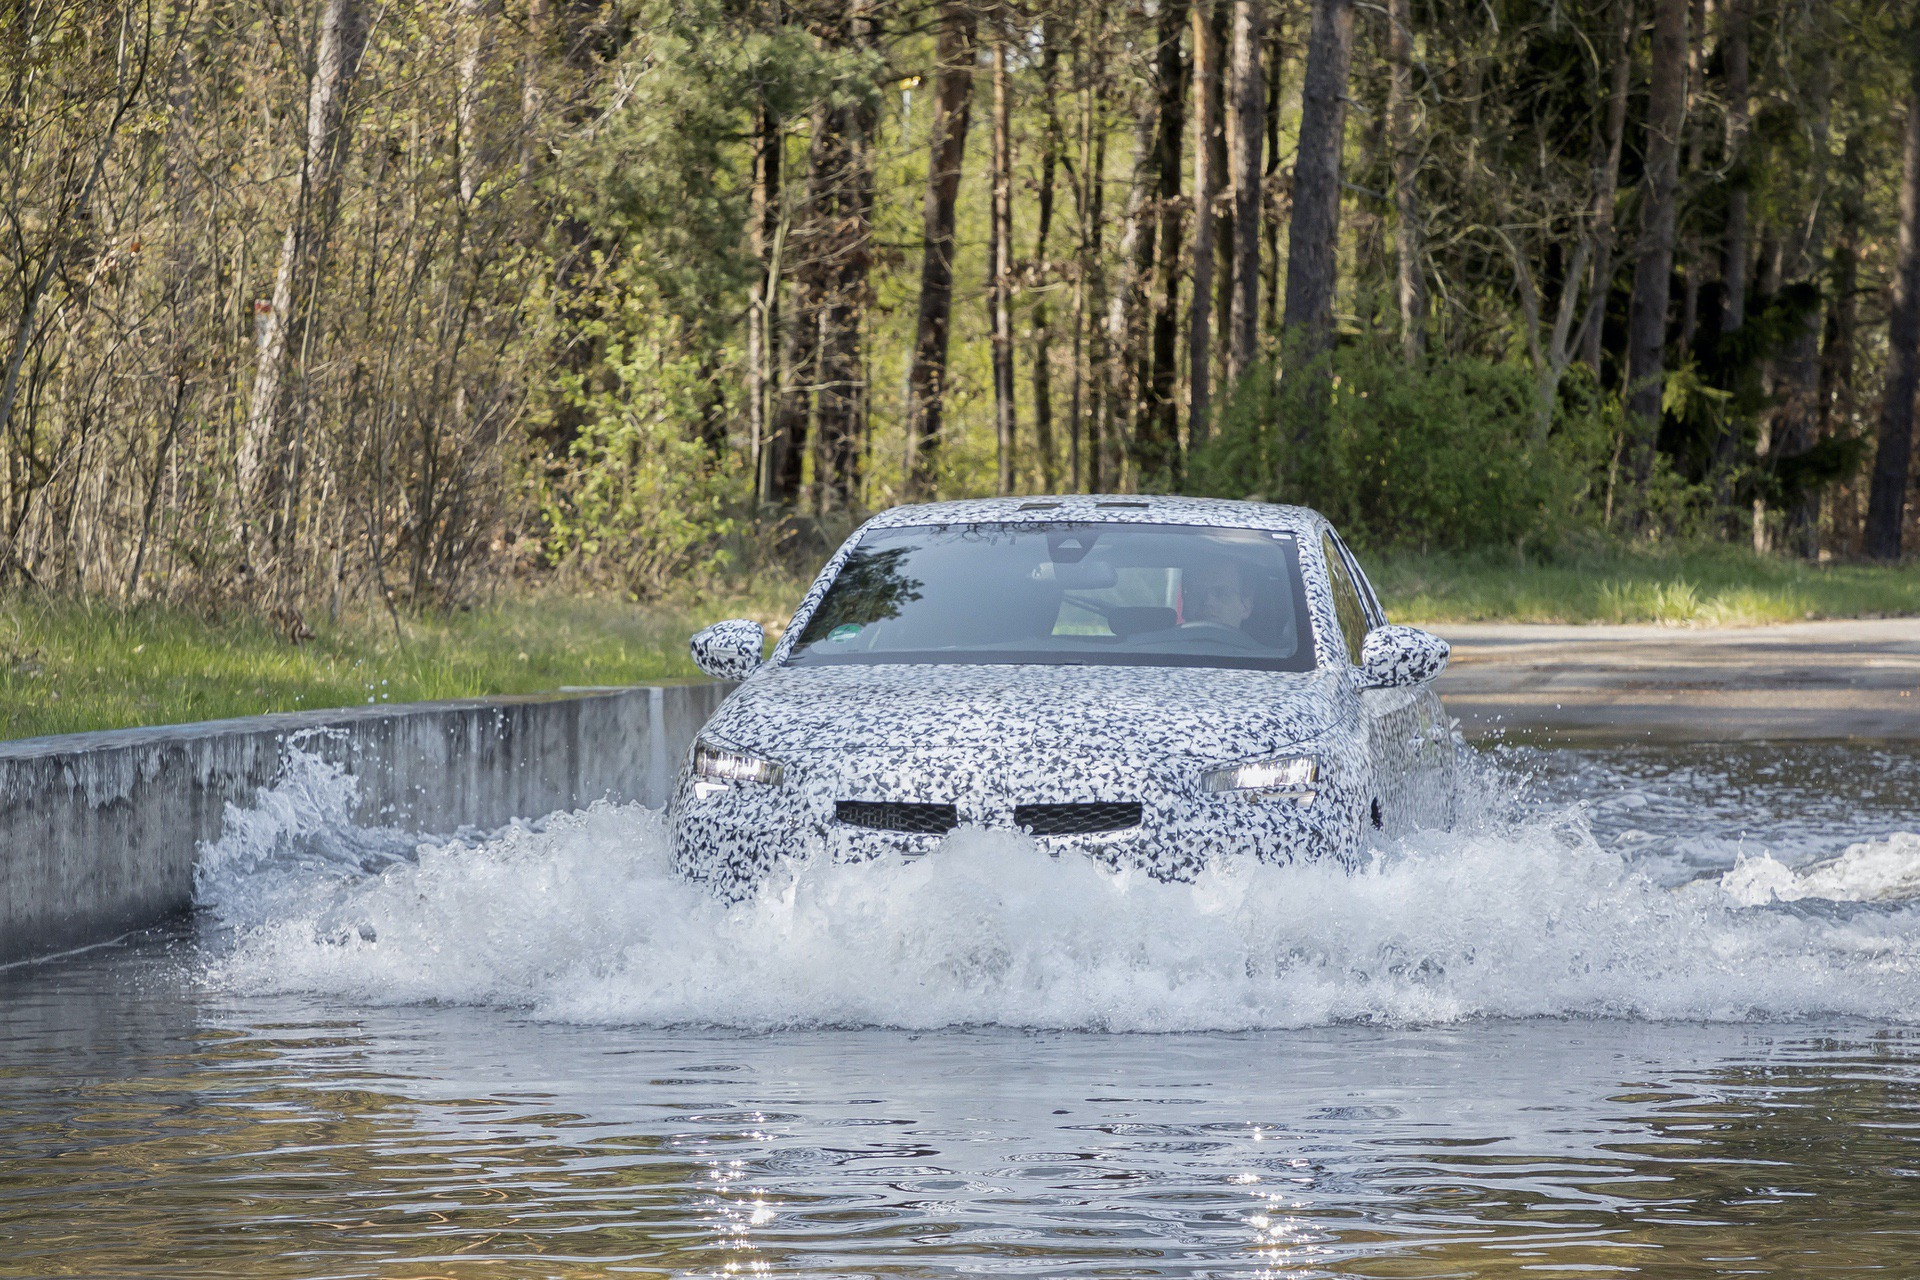 New Corsa test drives at Test Center Rodgau-Dudehofen, April 2019